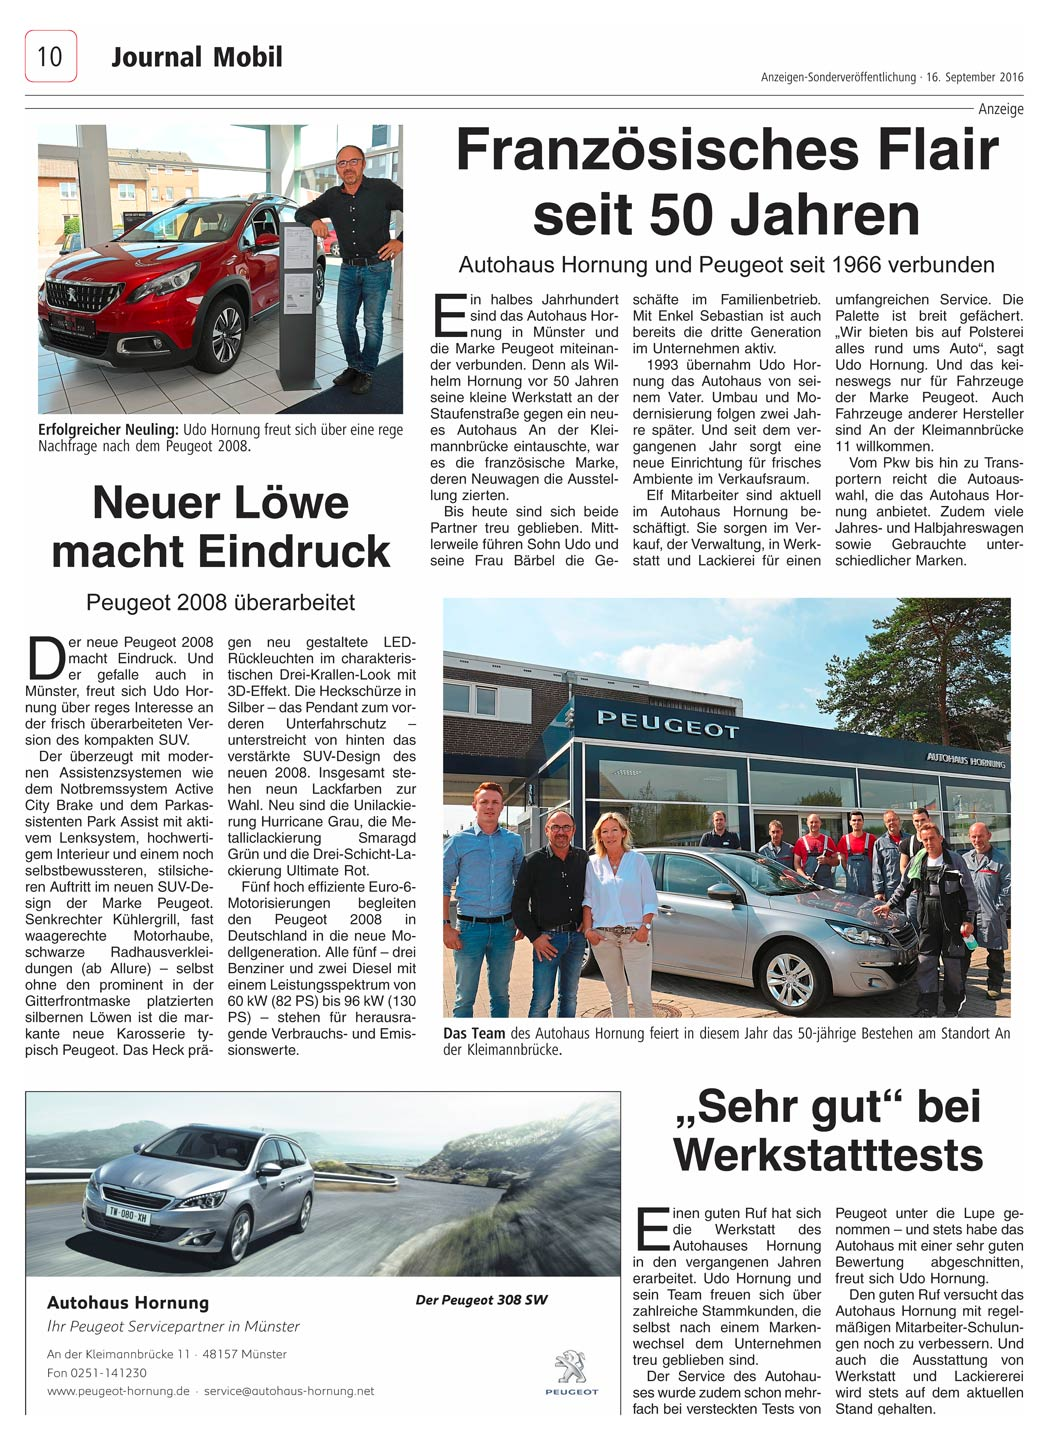 Journal Mobil vom 16.09.2016